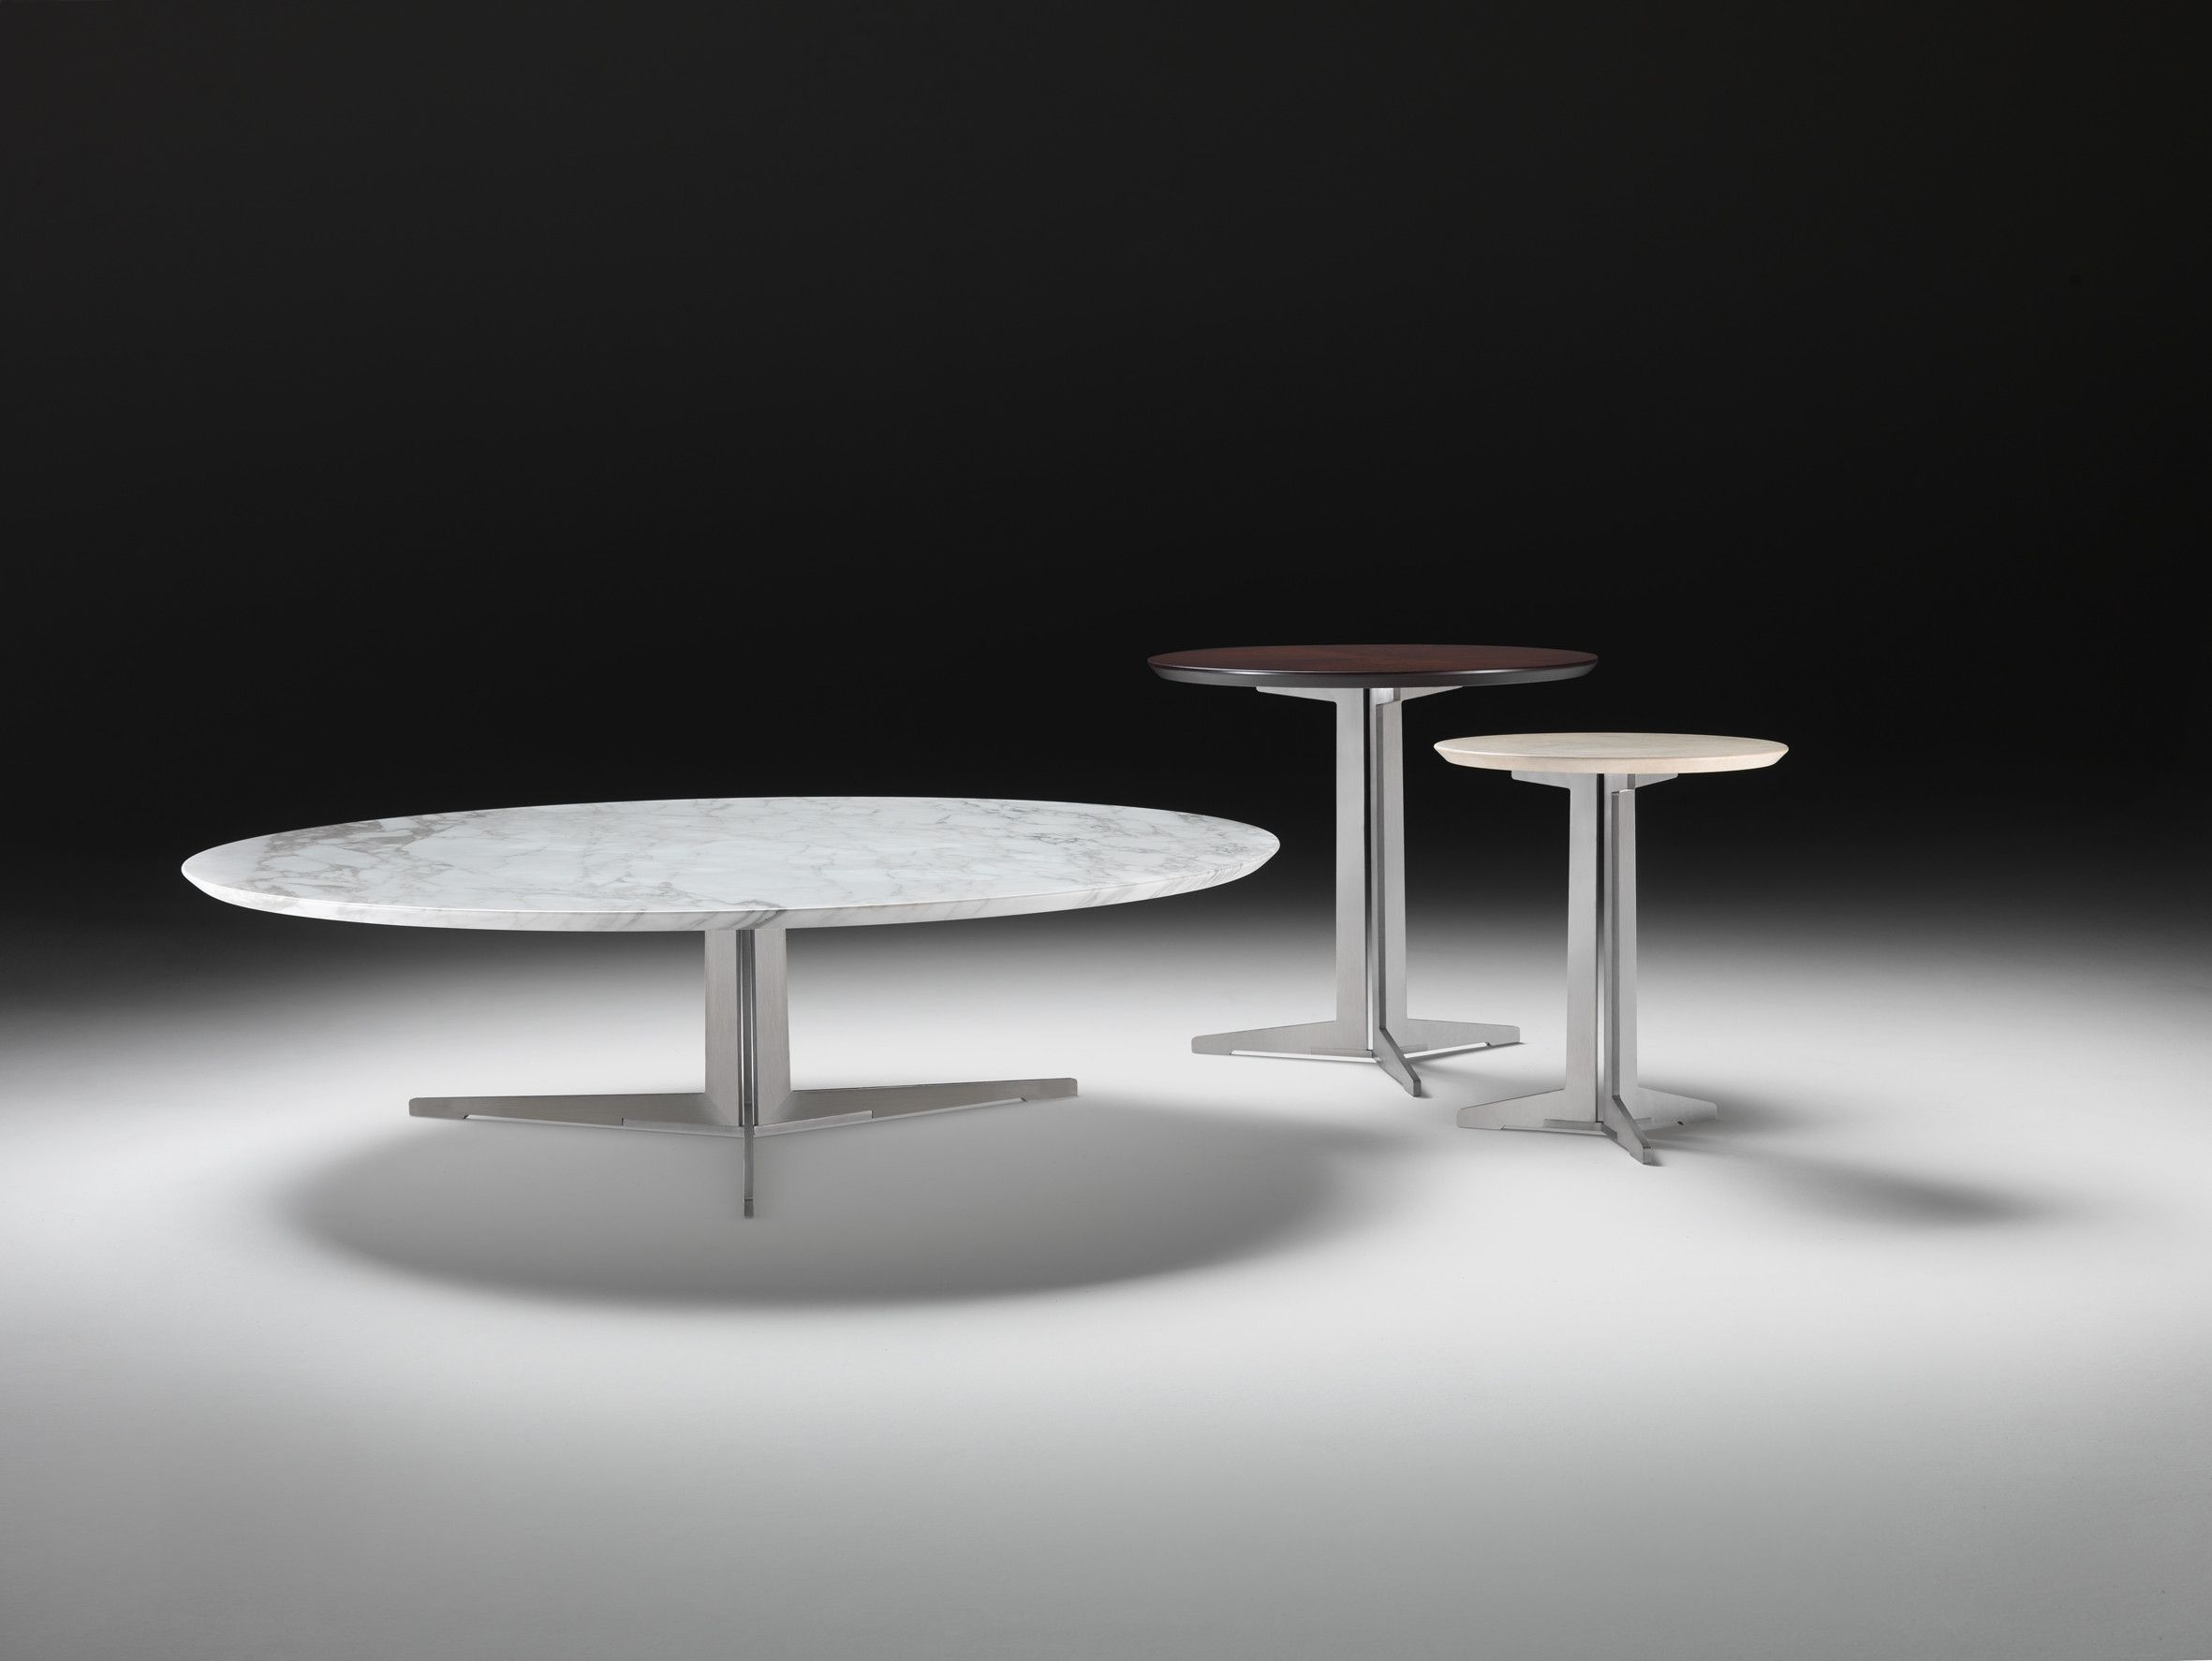 Couchtisch Antonio Flexform Fly Oval And Round Small Tables With Frame In Metal, Top In Wood Veneers Or Marble. Designed By Antonio Citterio.